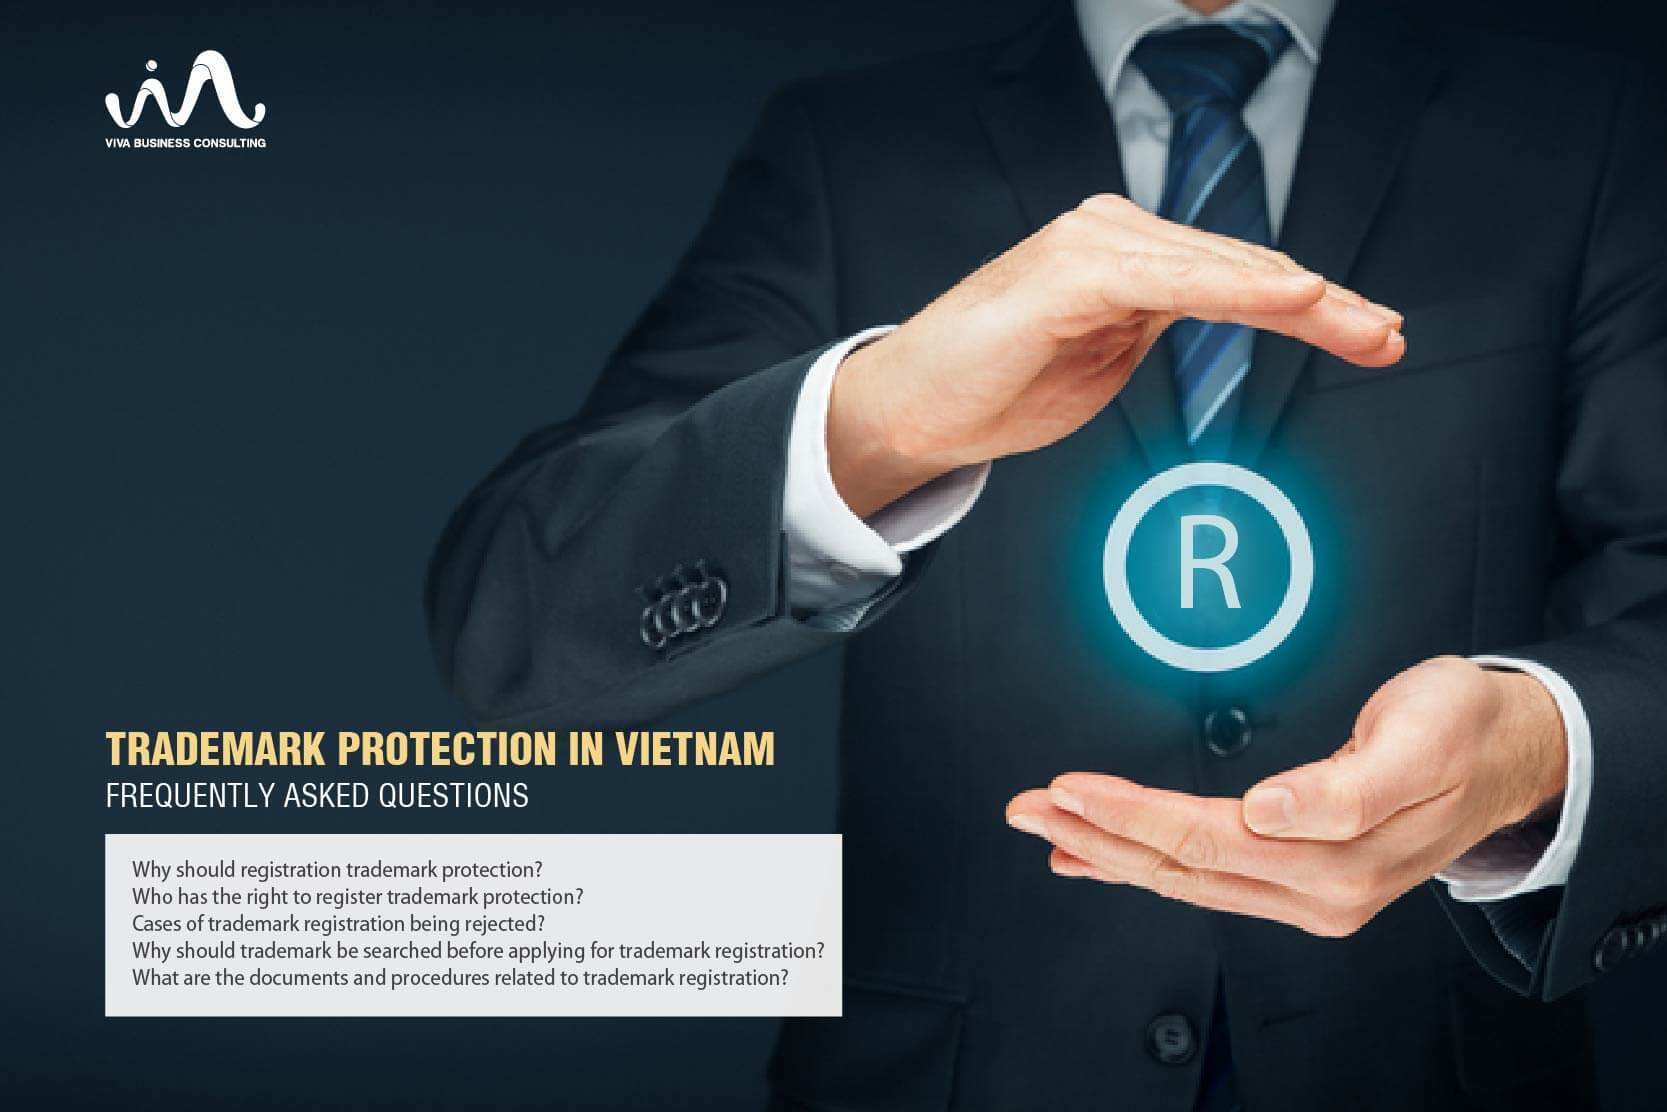 Trademark protection at VIVA